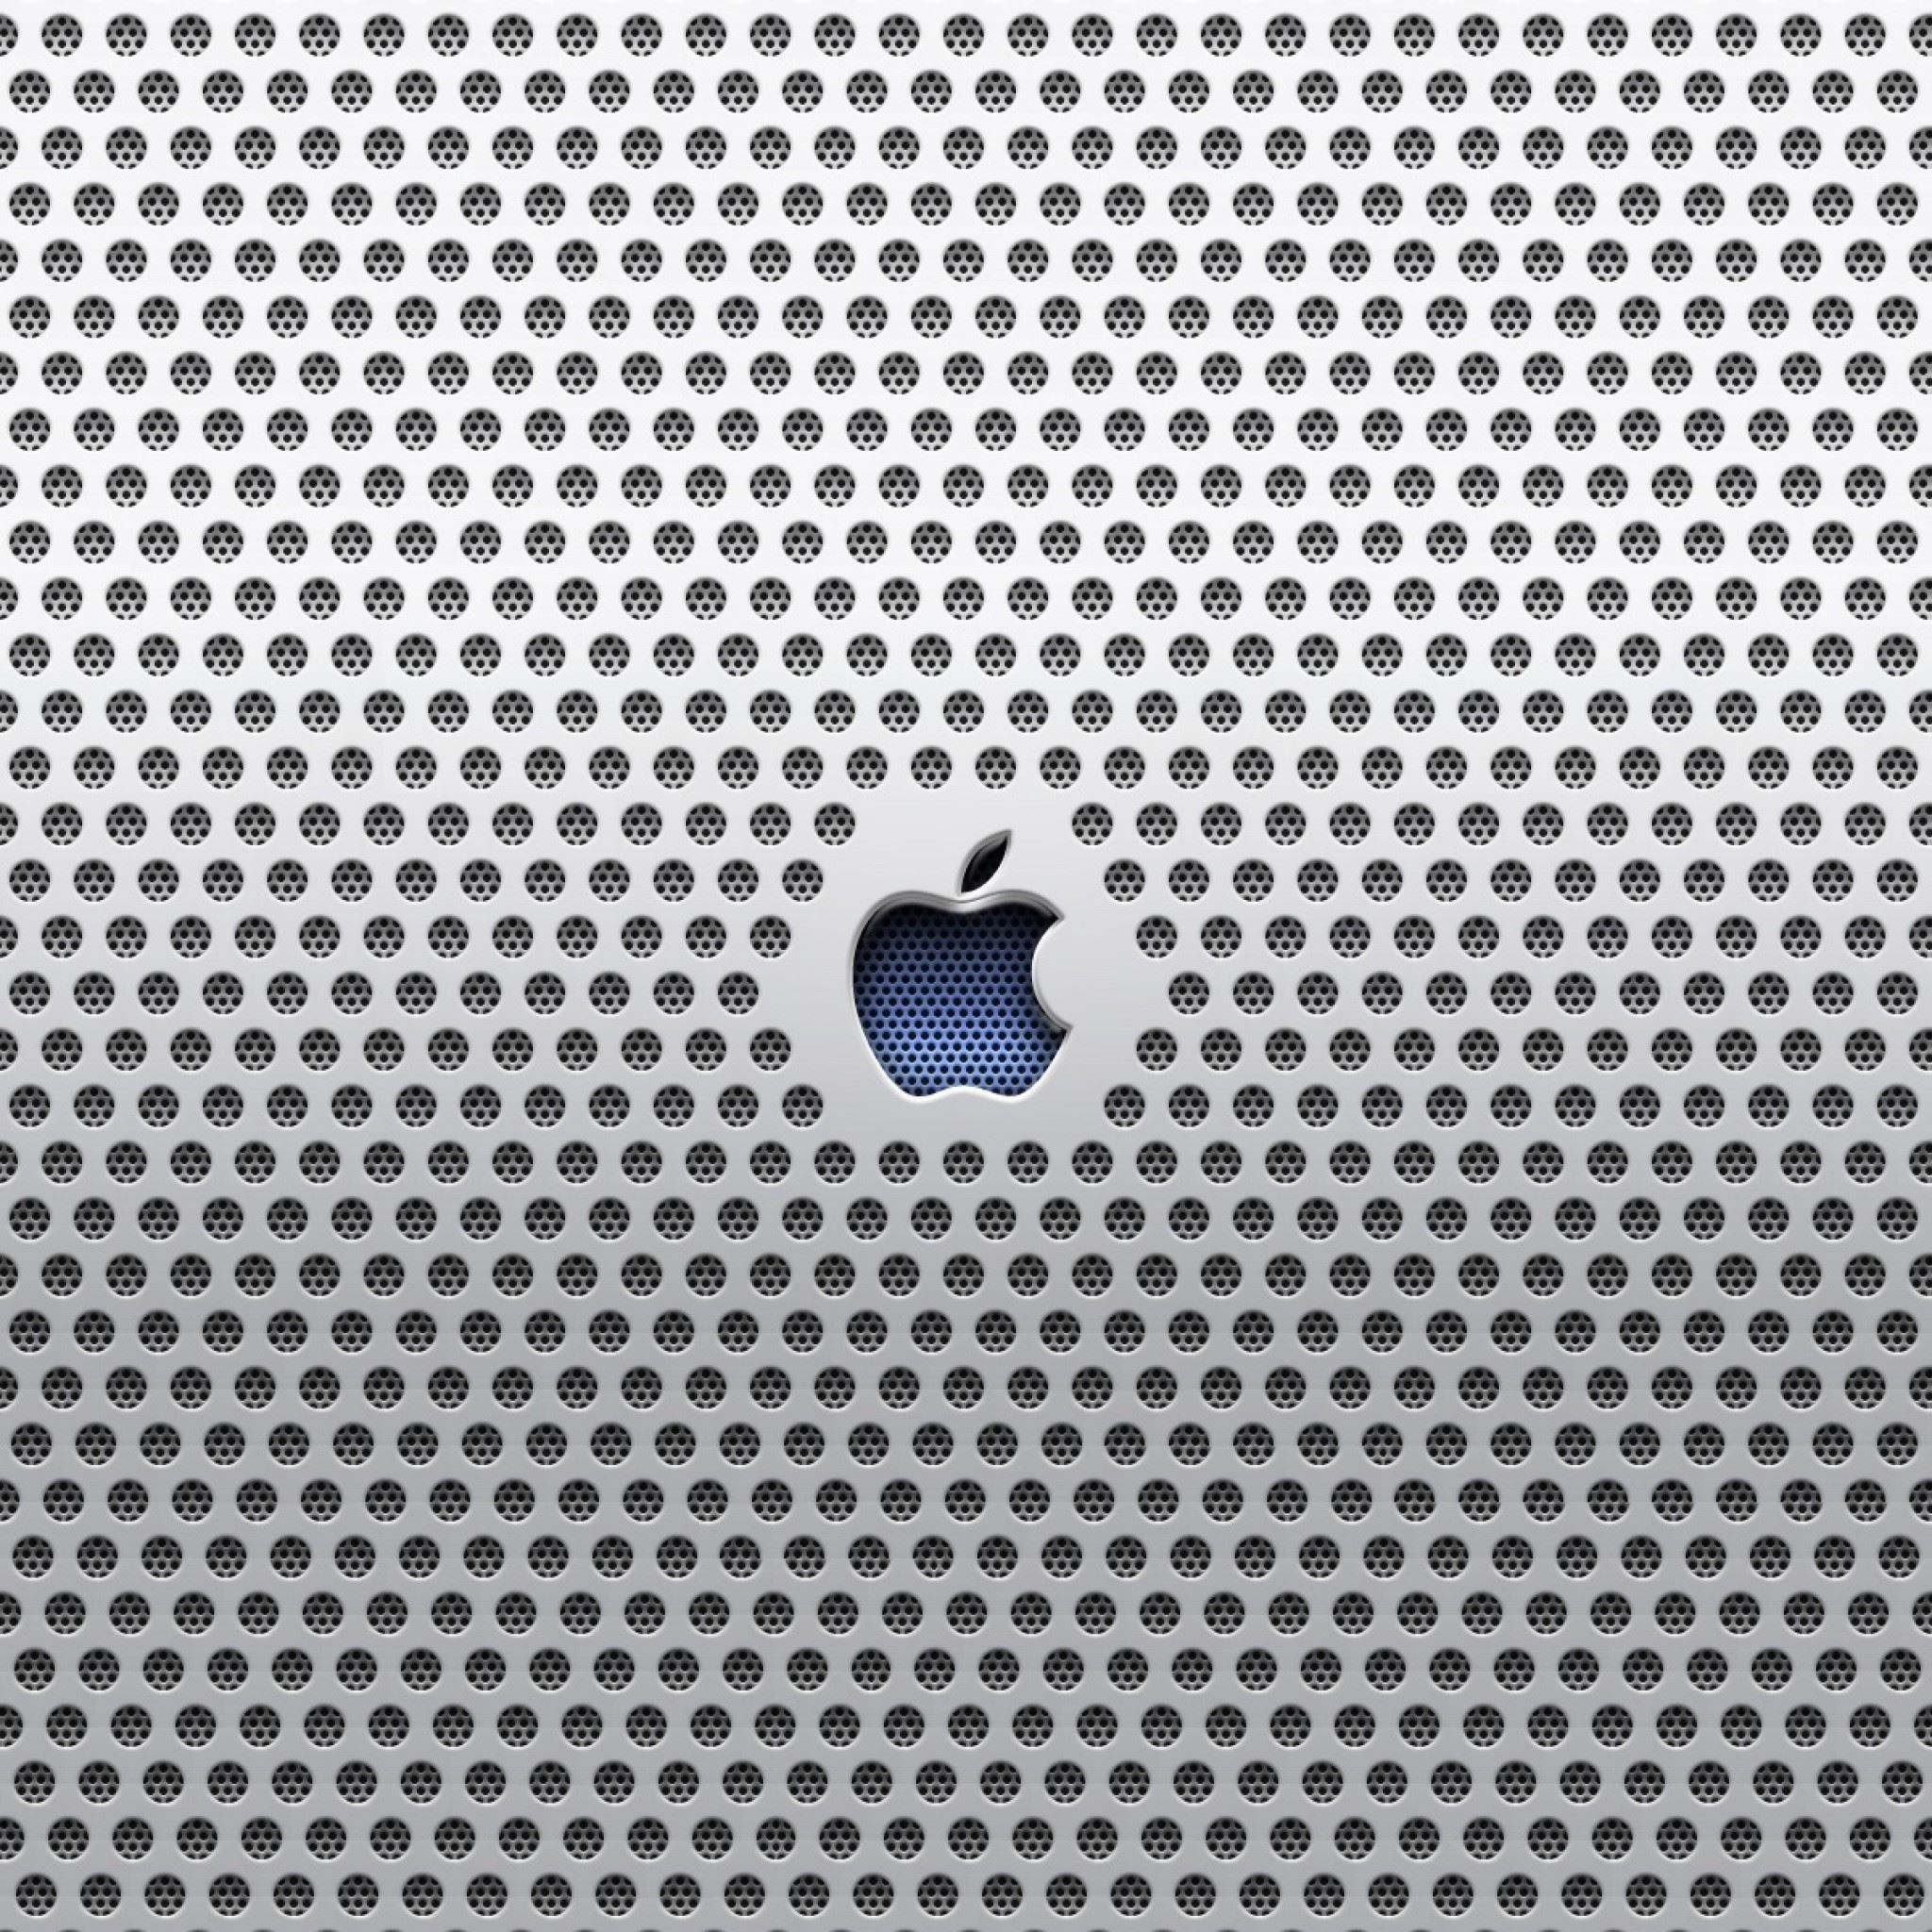 apple metal hd ipad air wallpaper download | iphone wallpapers, ipad